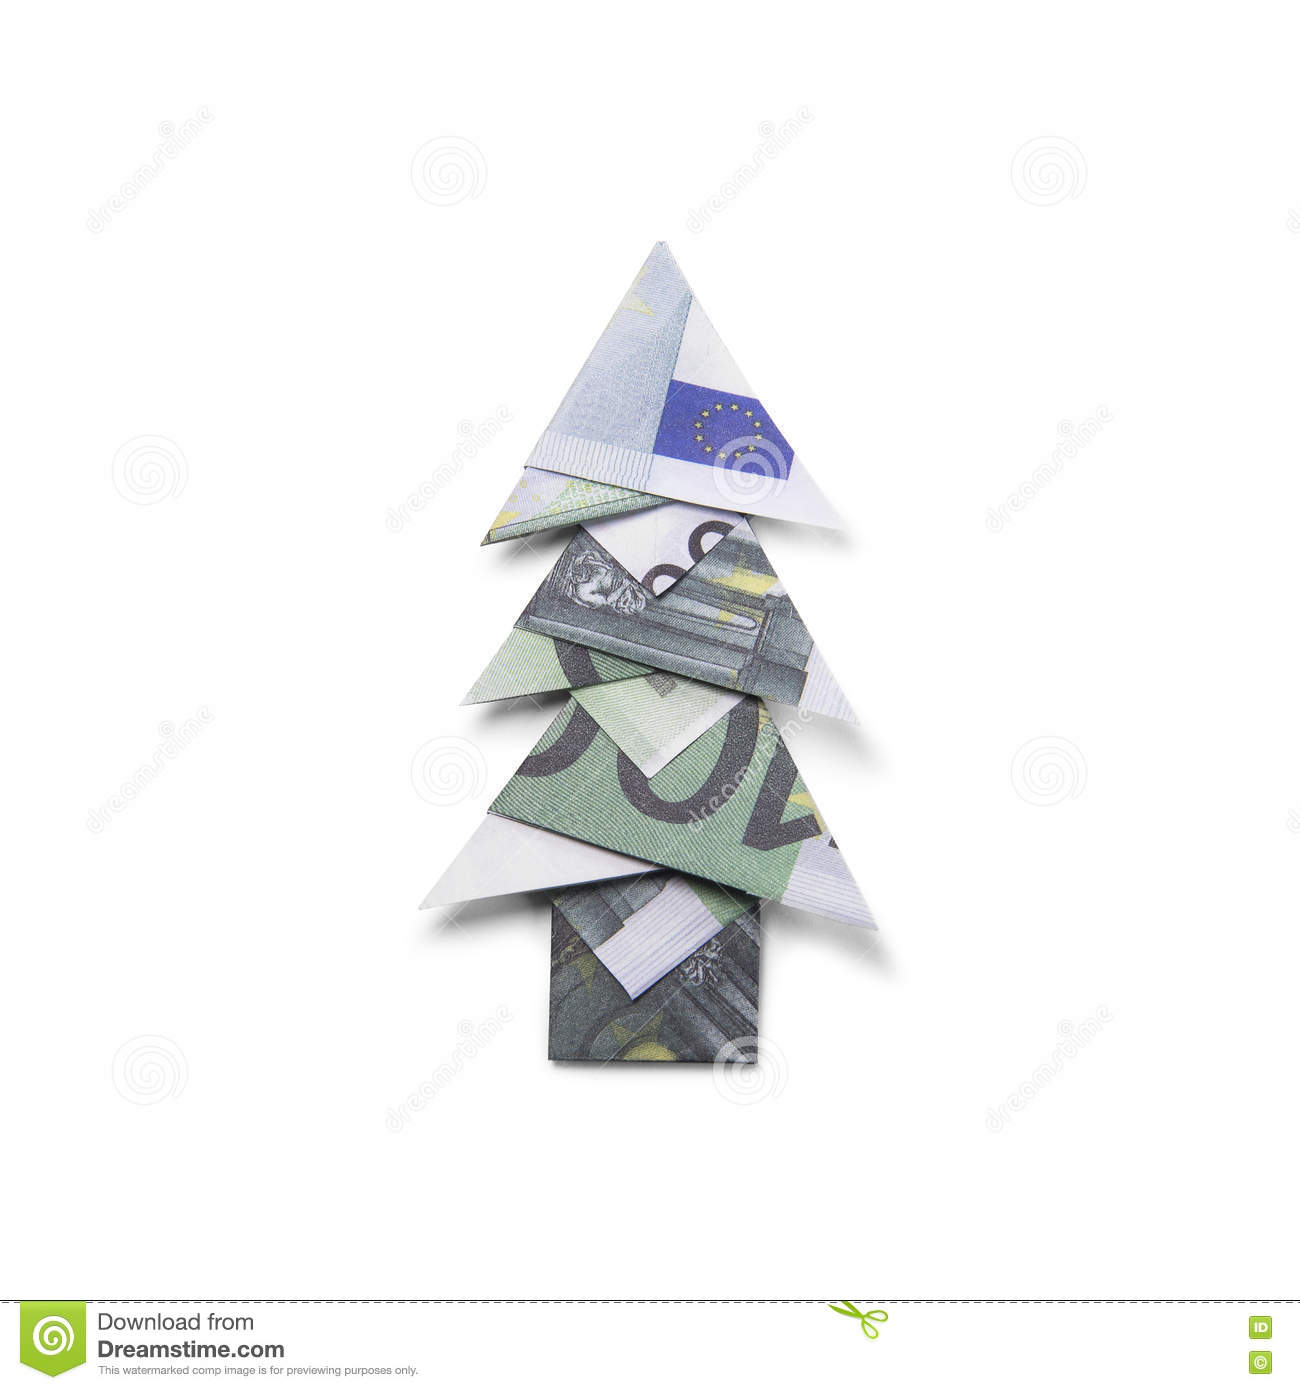 Money Folding Christmas Tree - Wallpaperall - photo#27